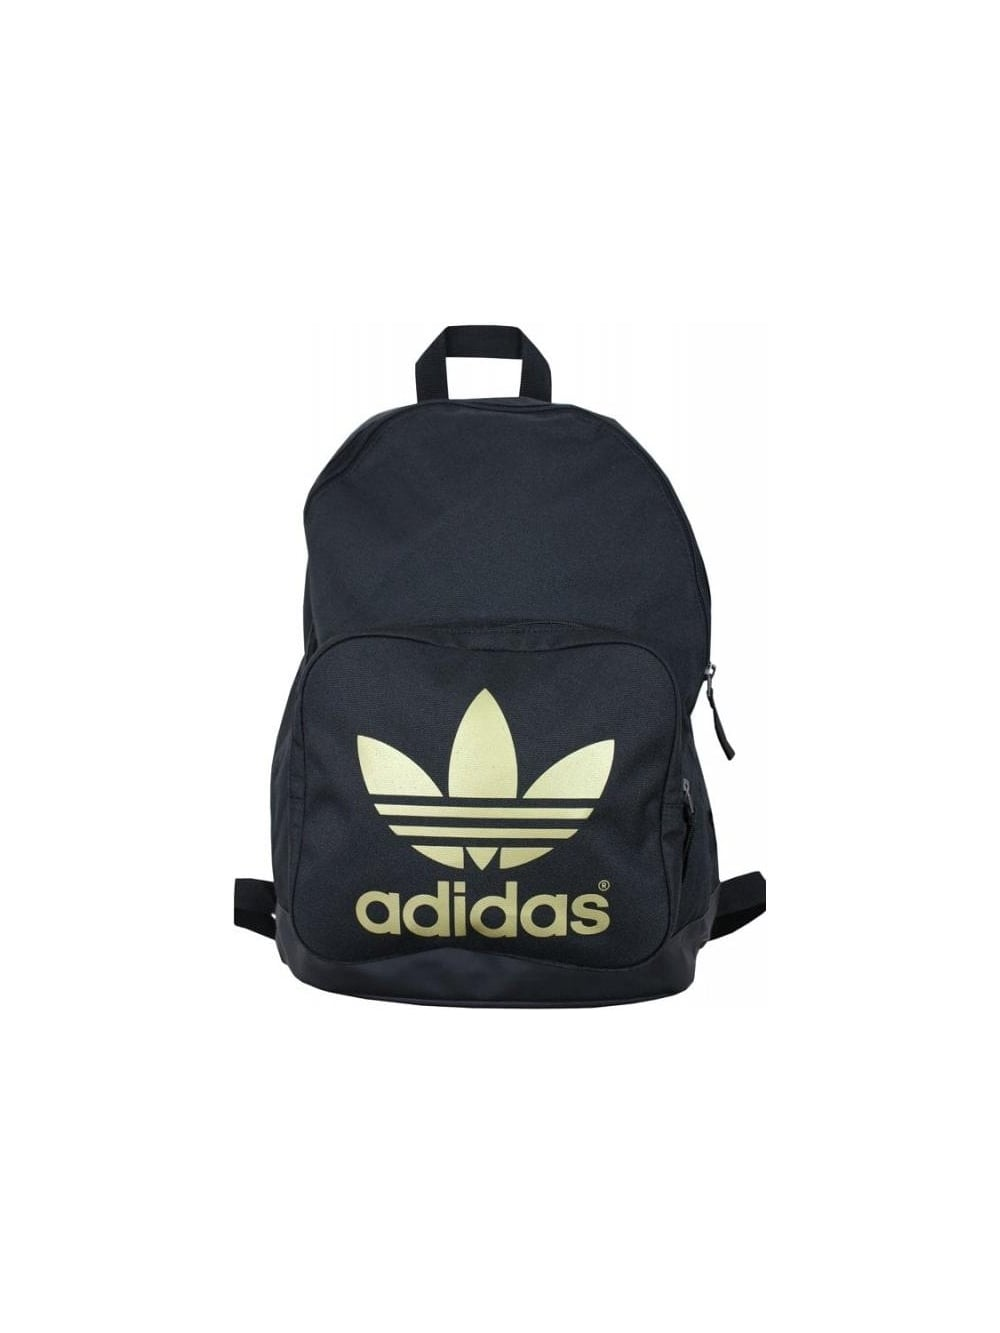 Adidas Originals AC Classic Backpack in Black Gold - Northern Threads